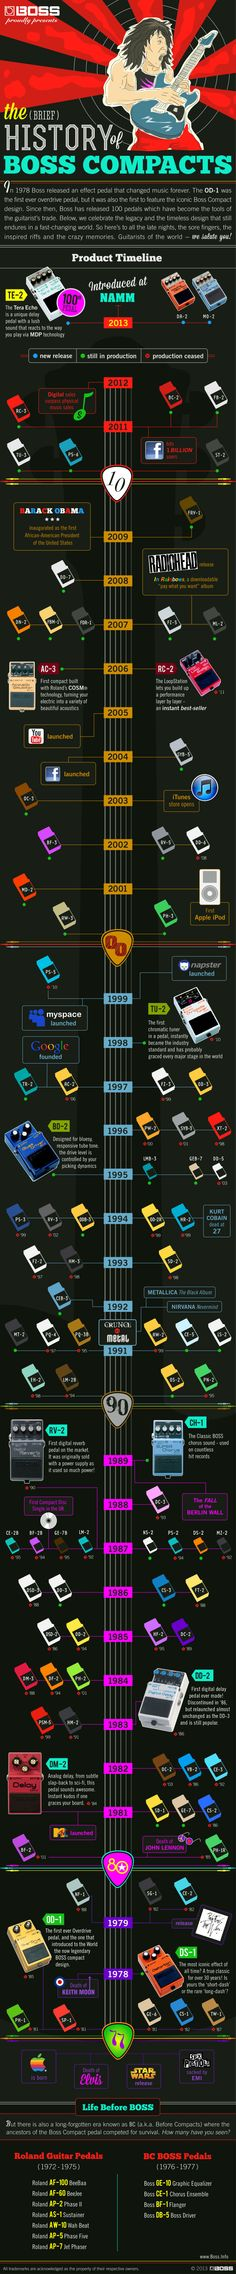 The History of BOSS Compacts